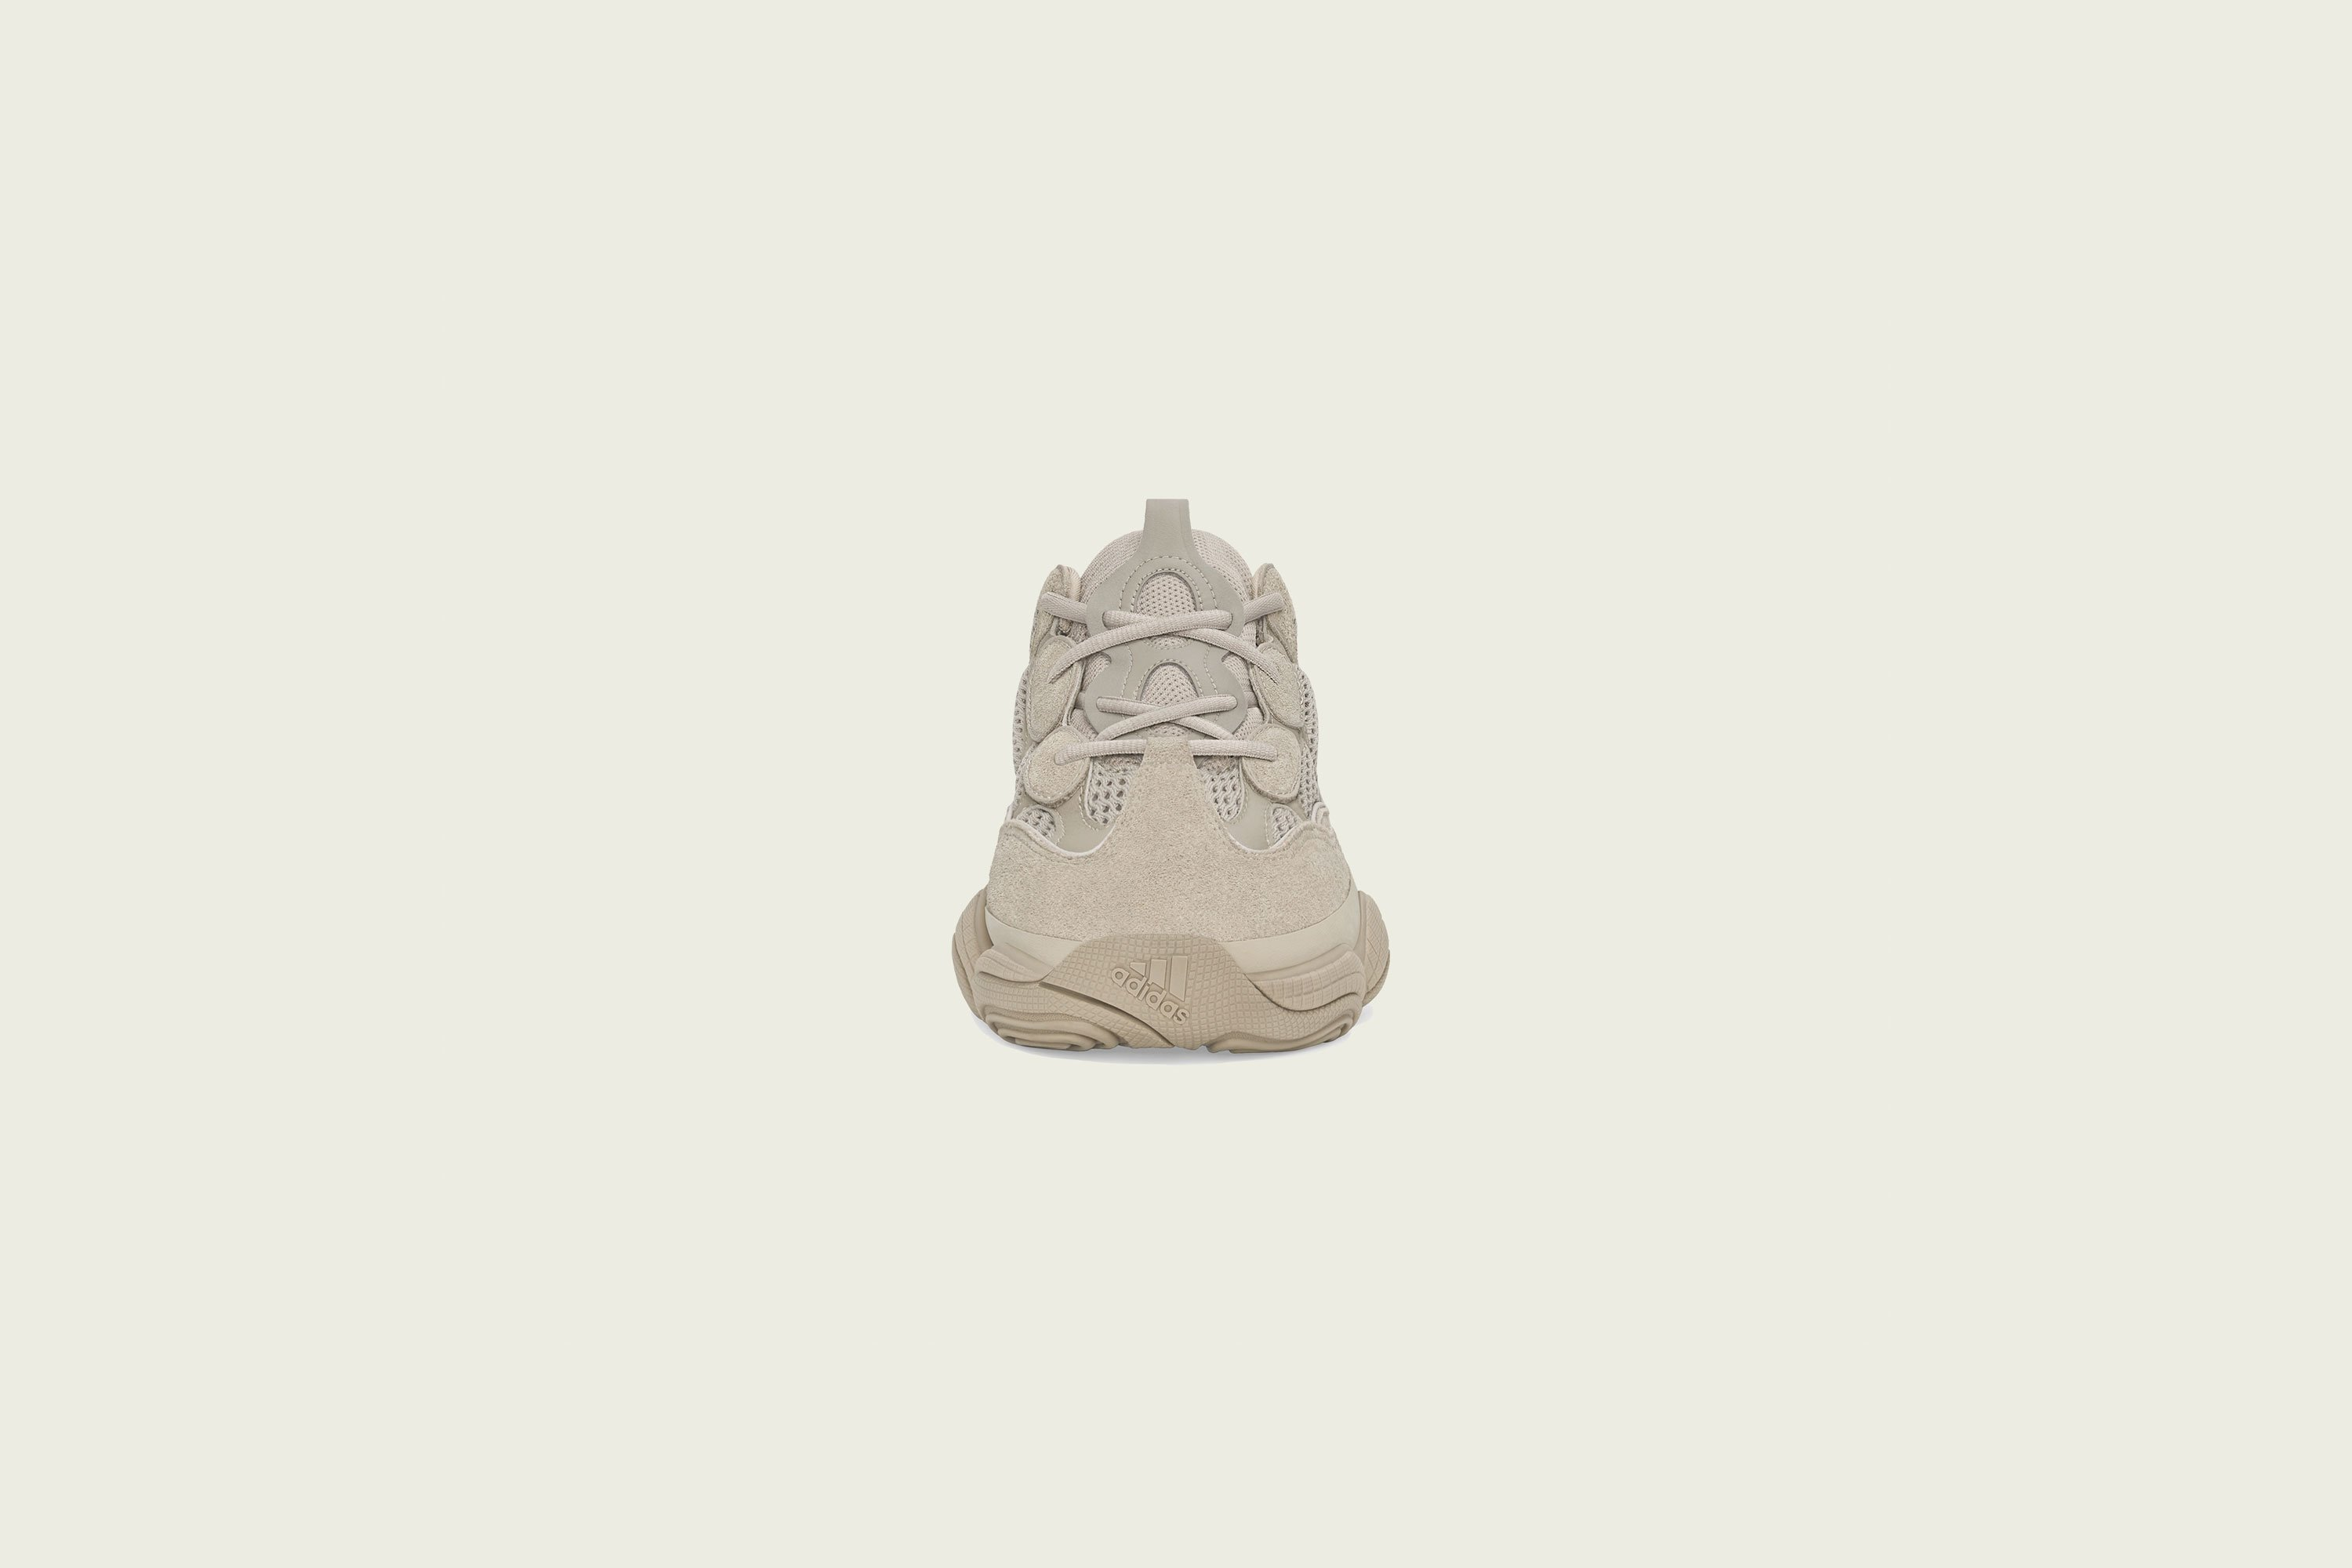 adidas - Yeezy 500 - Taupe Light - Up There